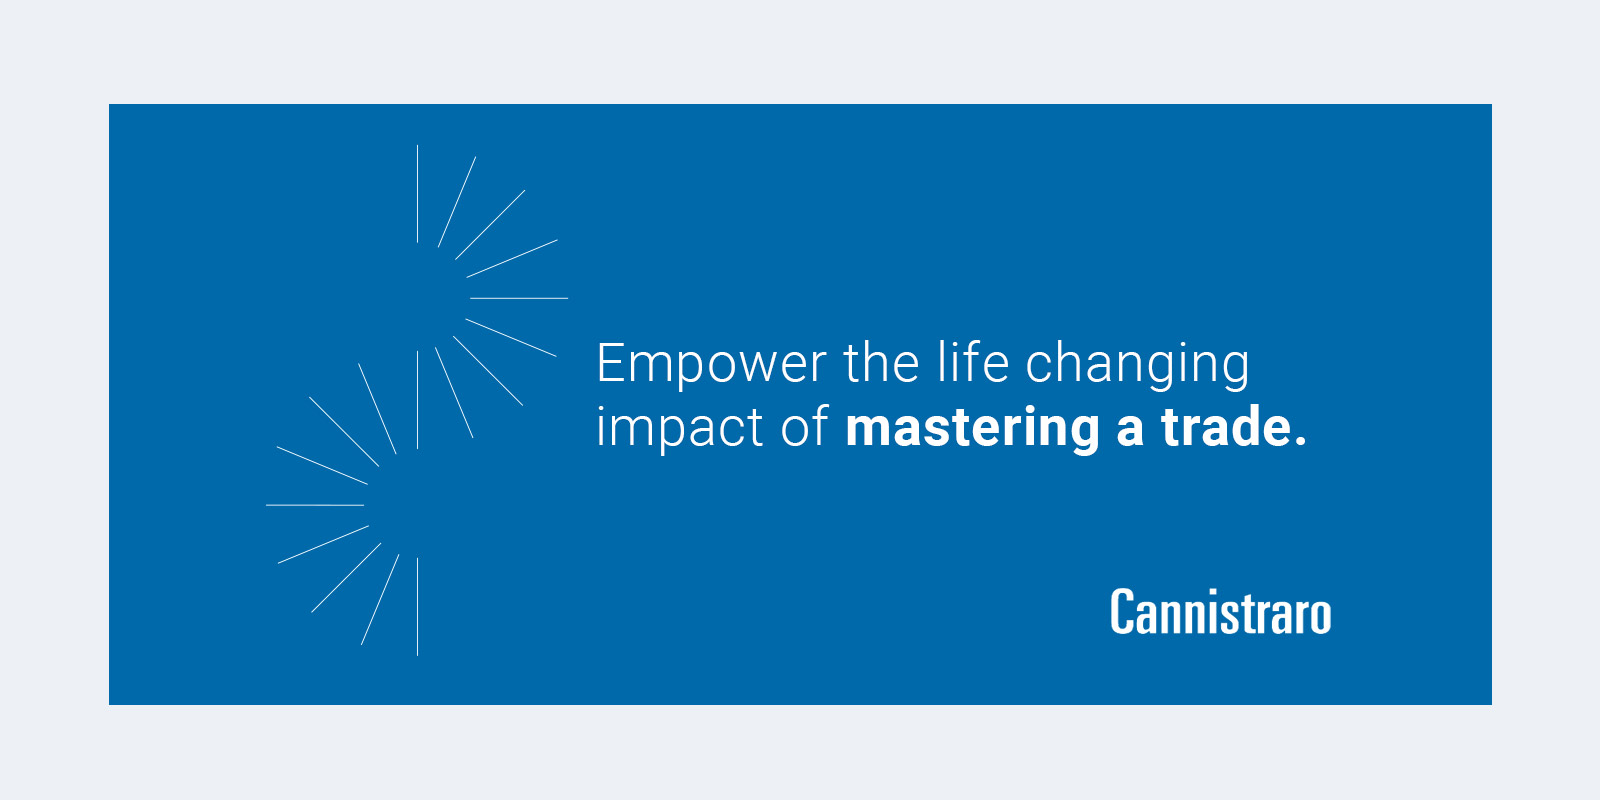 Cannistraro higher purpose statement: Empower the life changing impact of mastering a trade.